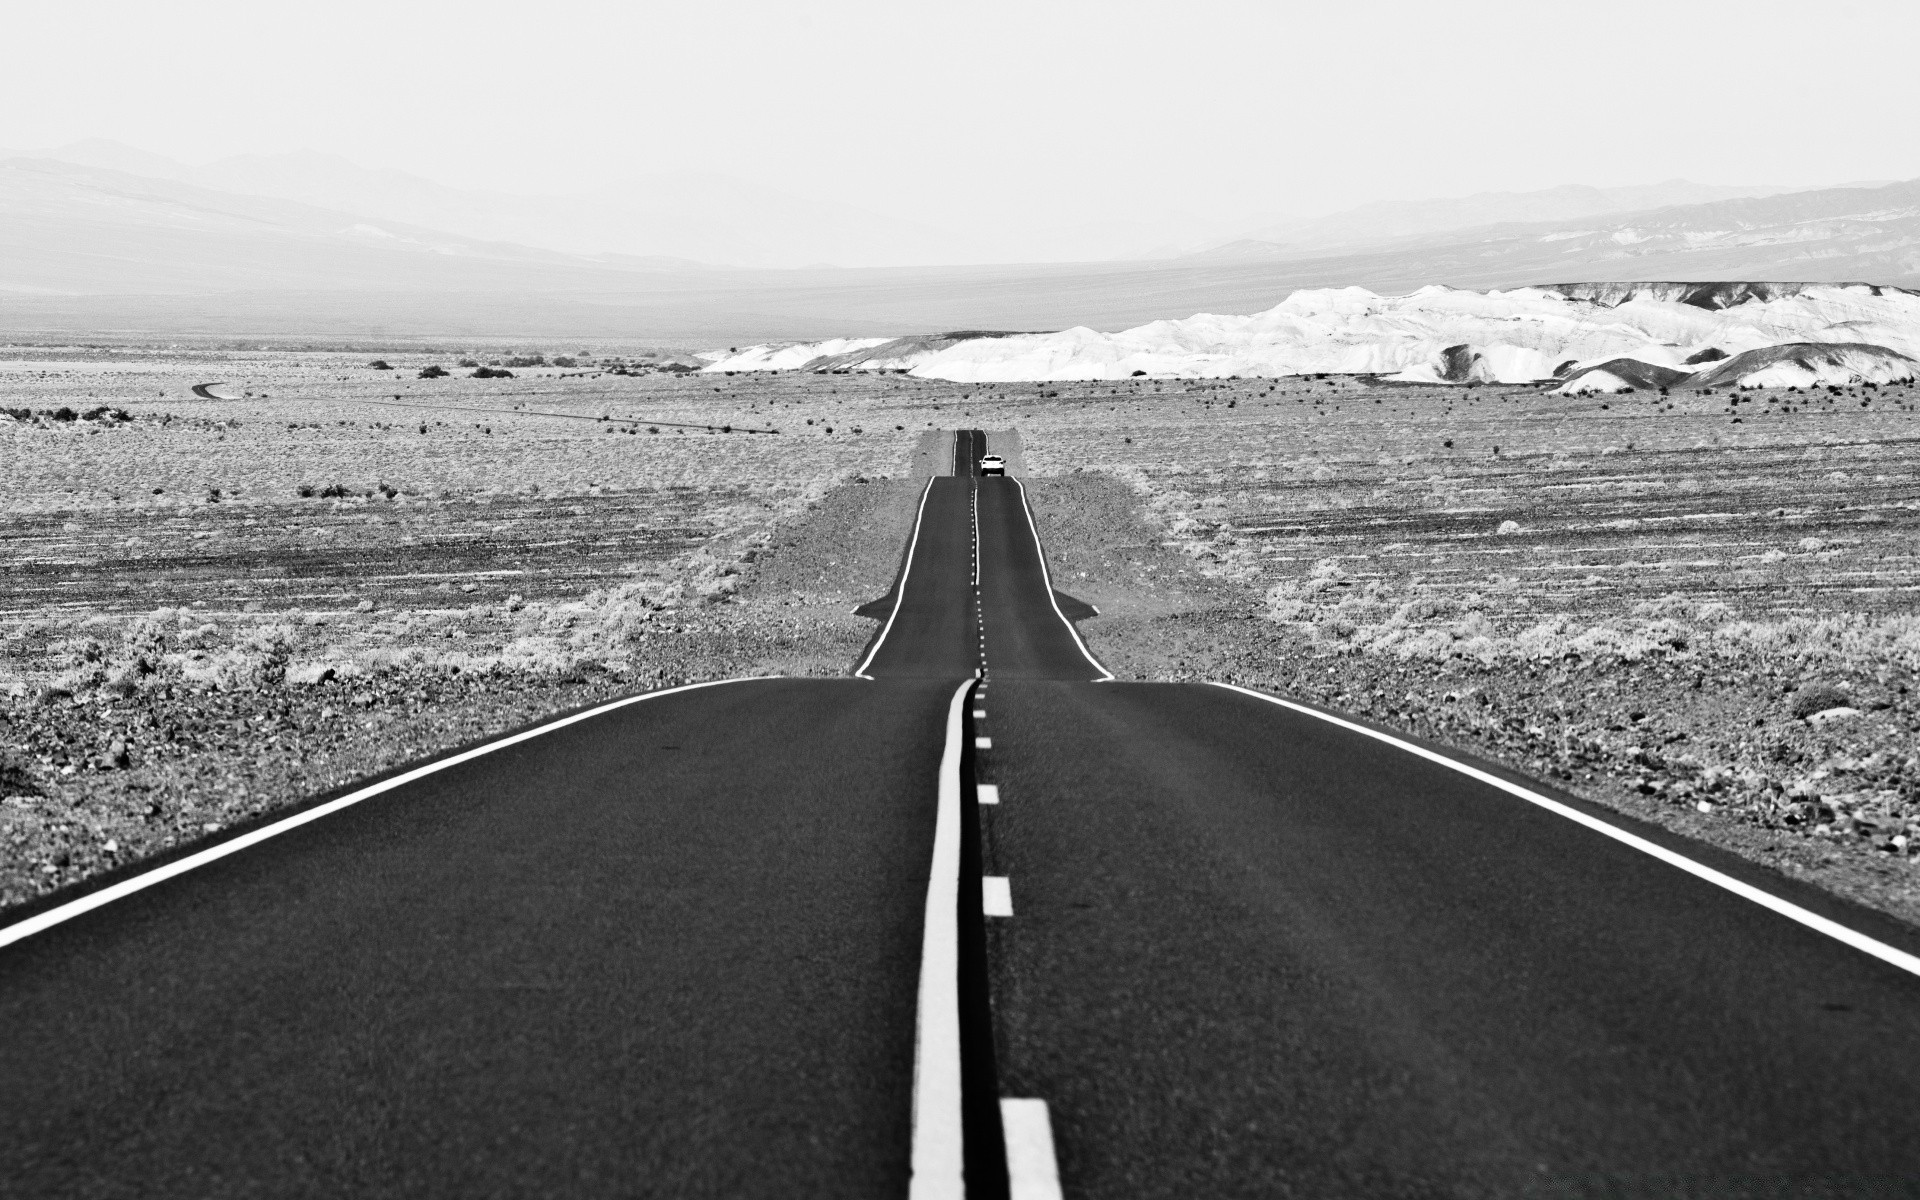 black and white highway road asphalt landscape travel transportation system street empty desert sky monochrome guidance expressway outdoors